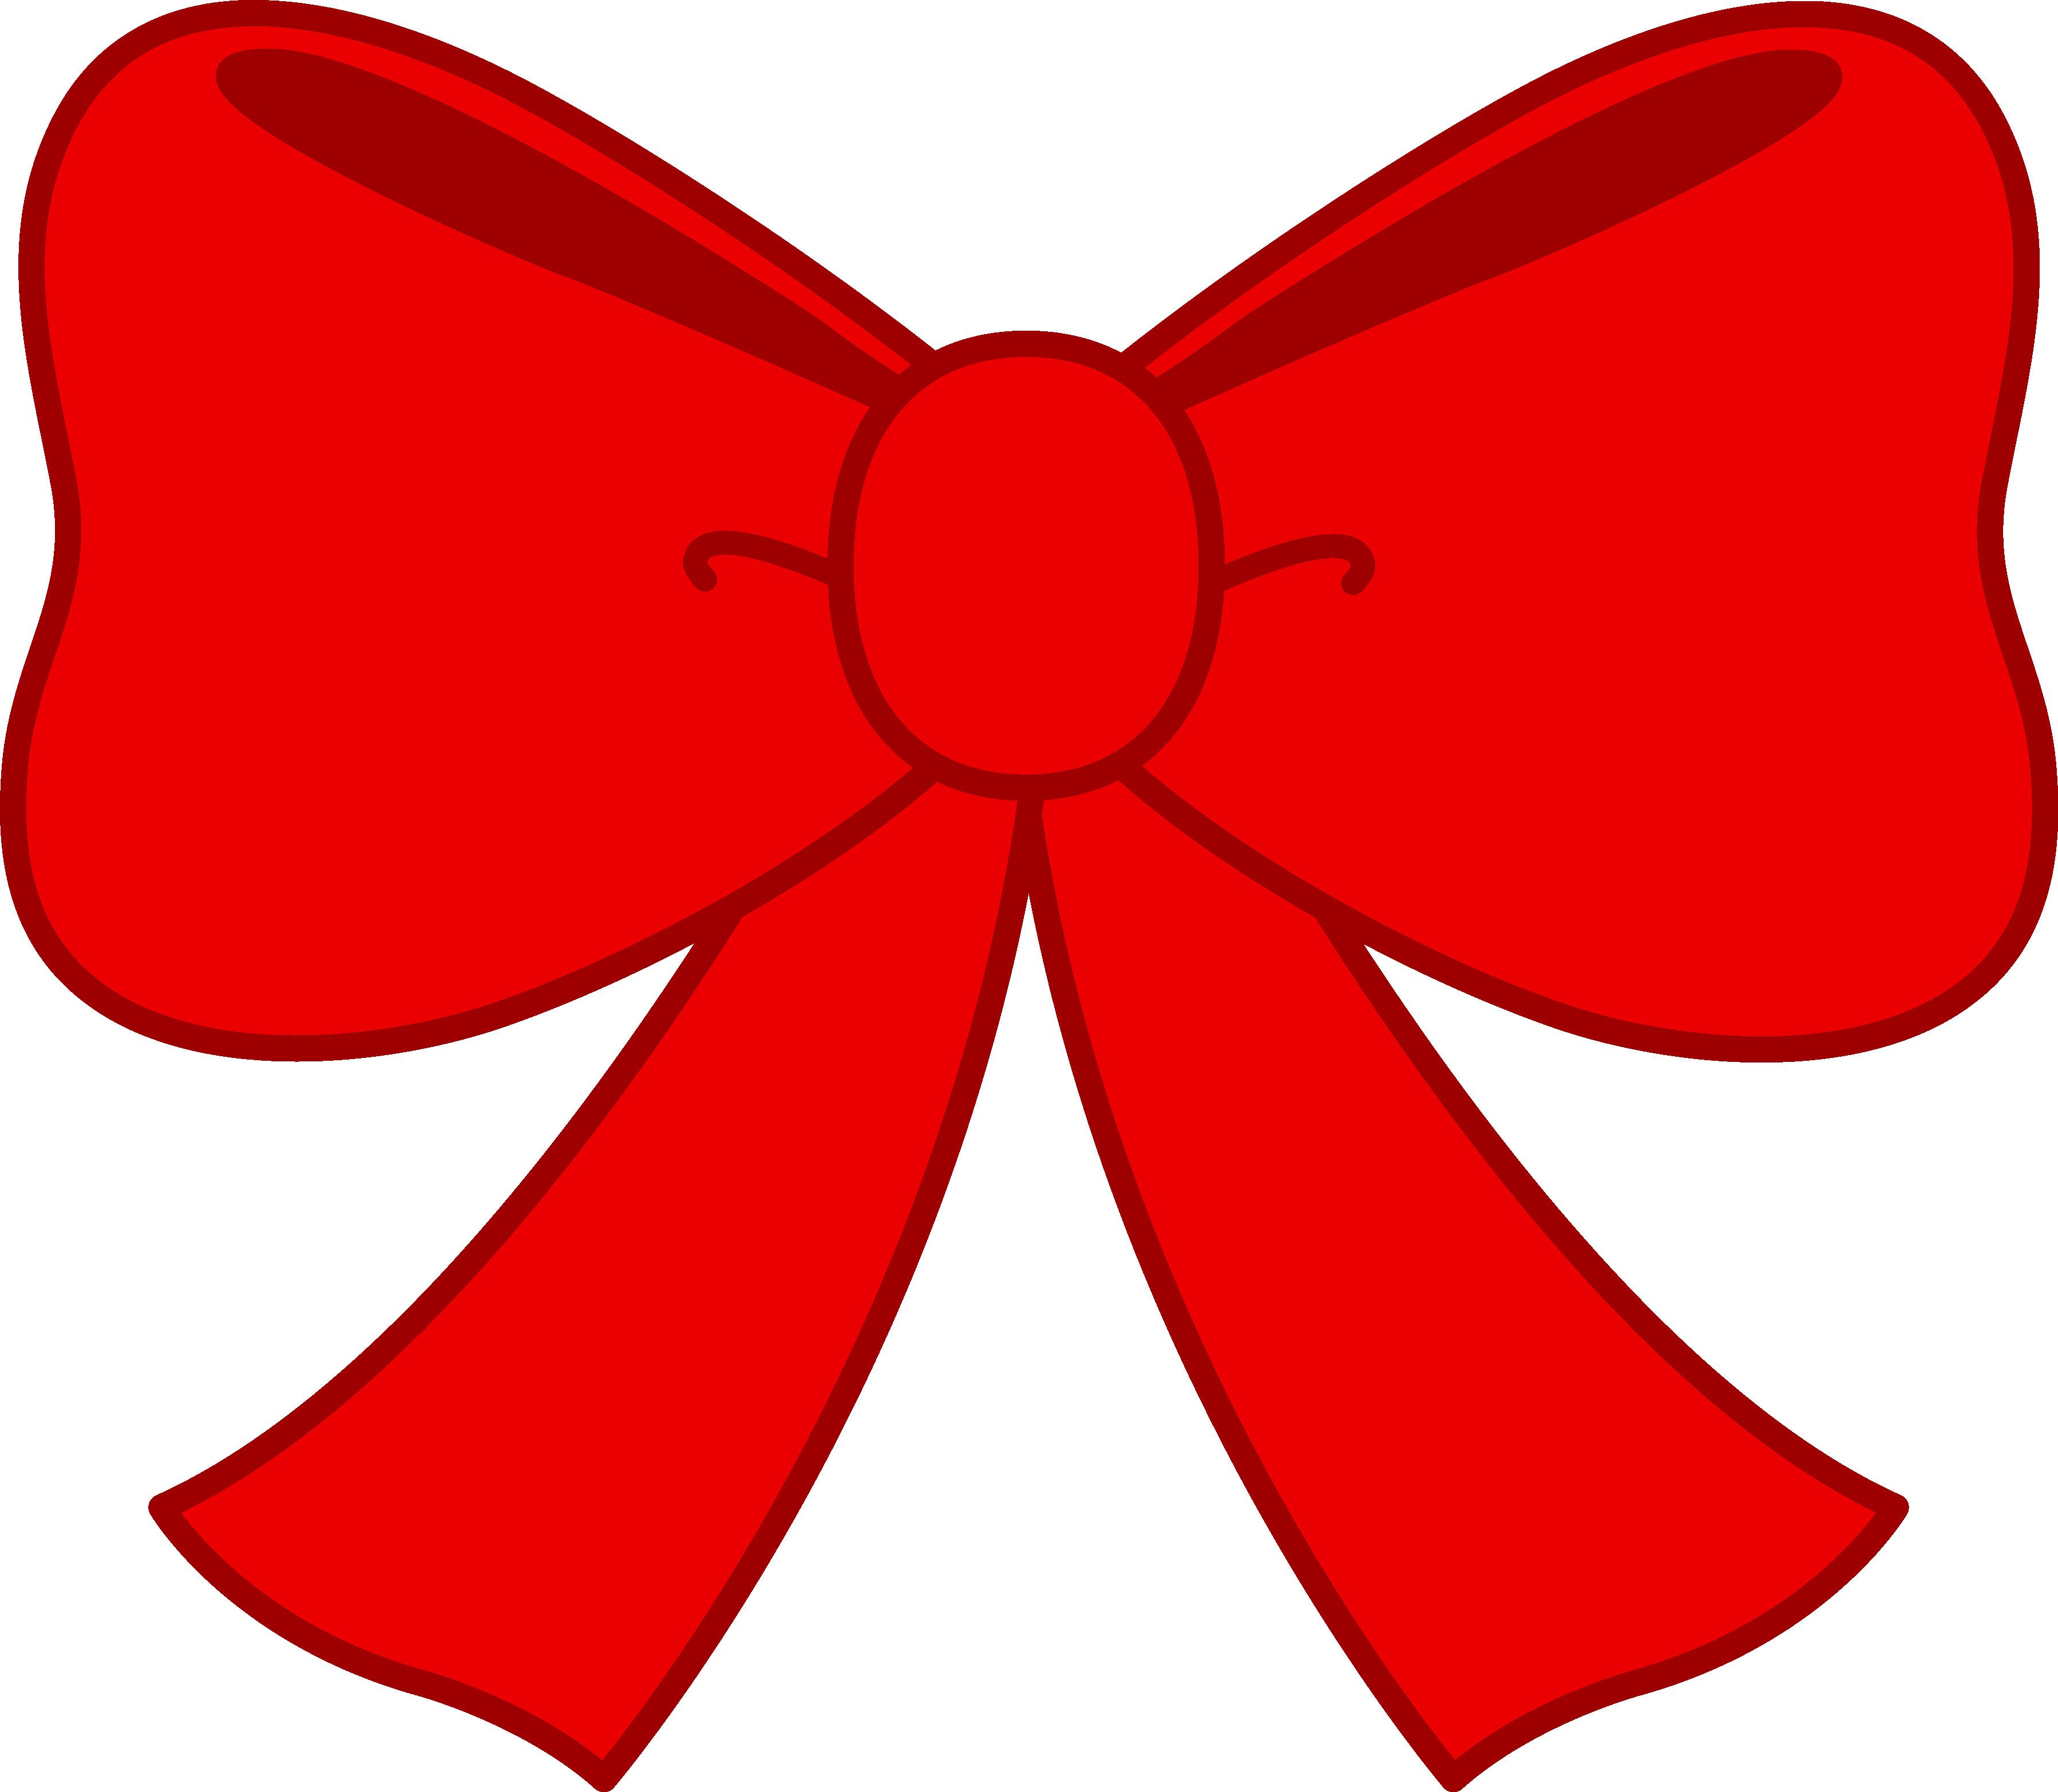 clip art library download Free download clip art. Bow clipart xmas